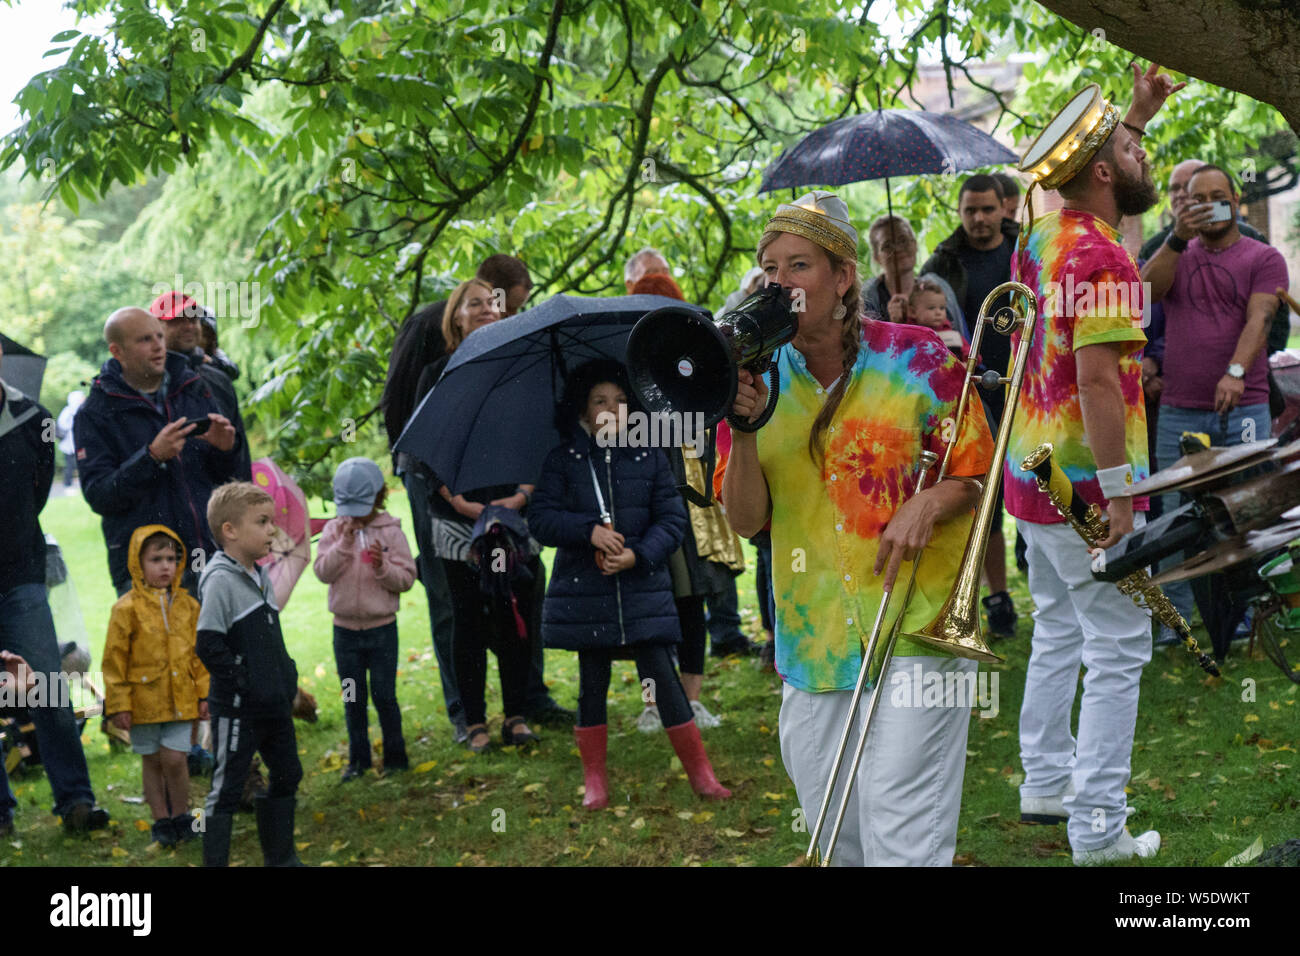 Female Trombone player from Mr Wilson's Second Liners singing through a Loud Hailer at The Valley Gardens Carnival, Harrogate, North Yorkshire, UK. Stock Photo